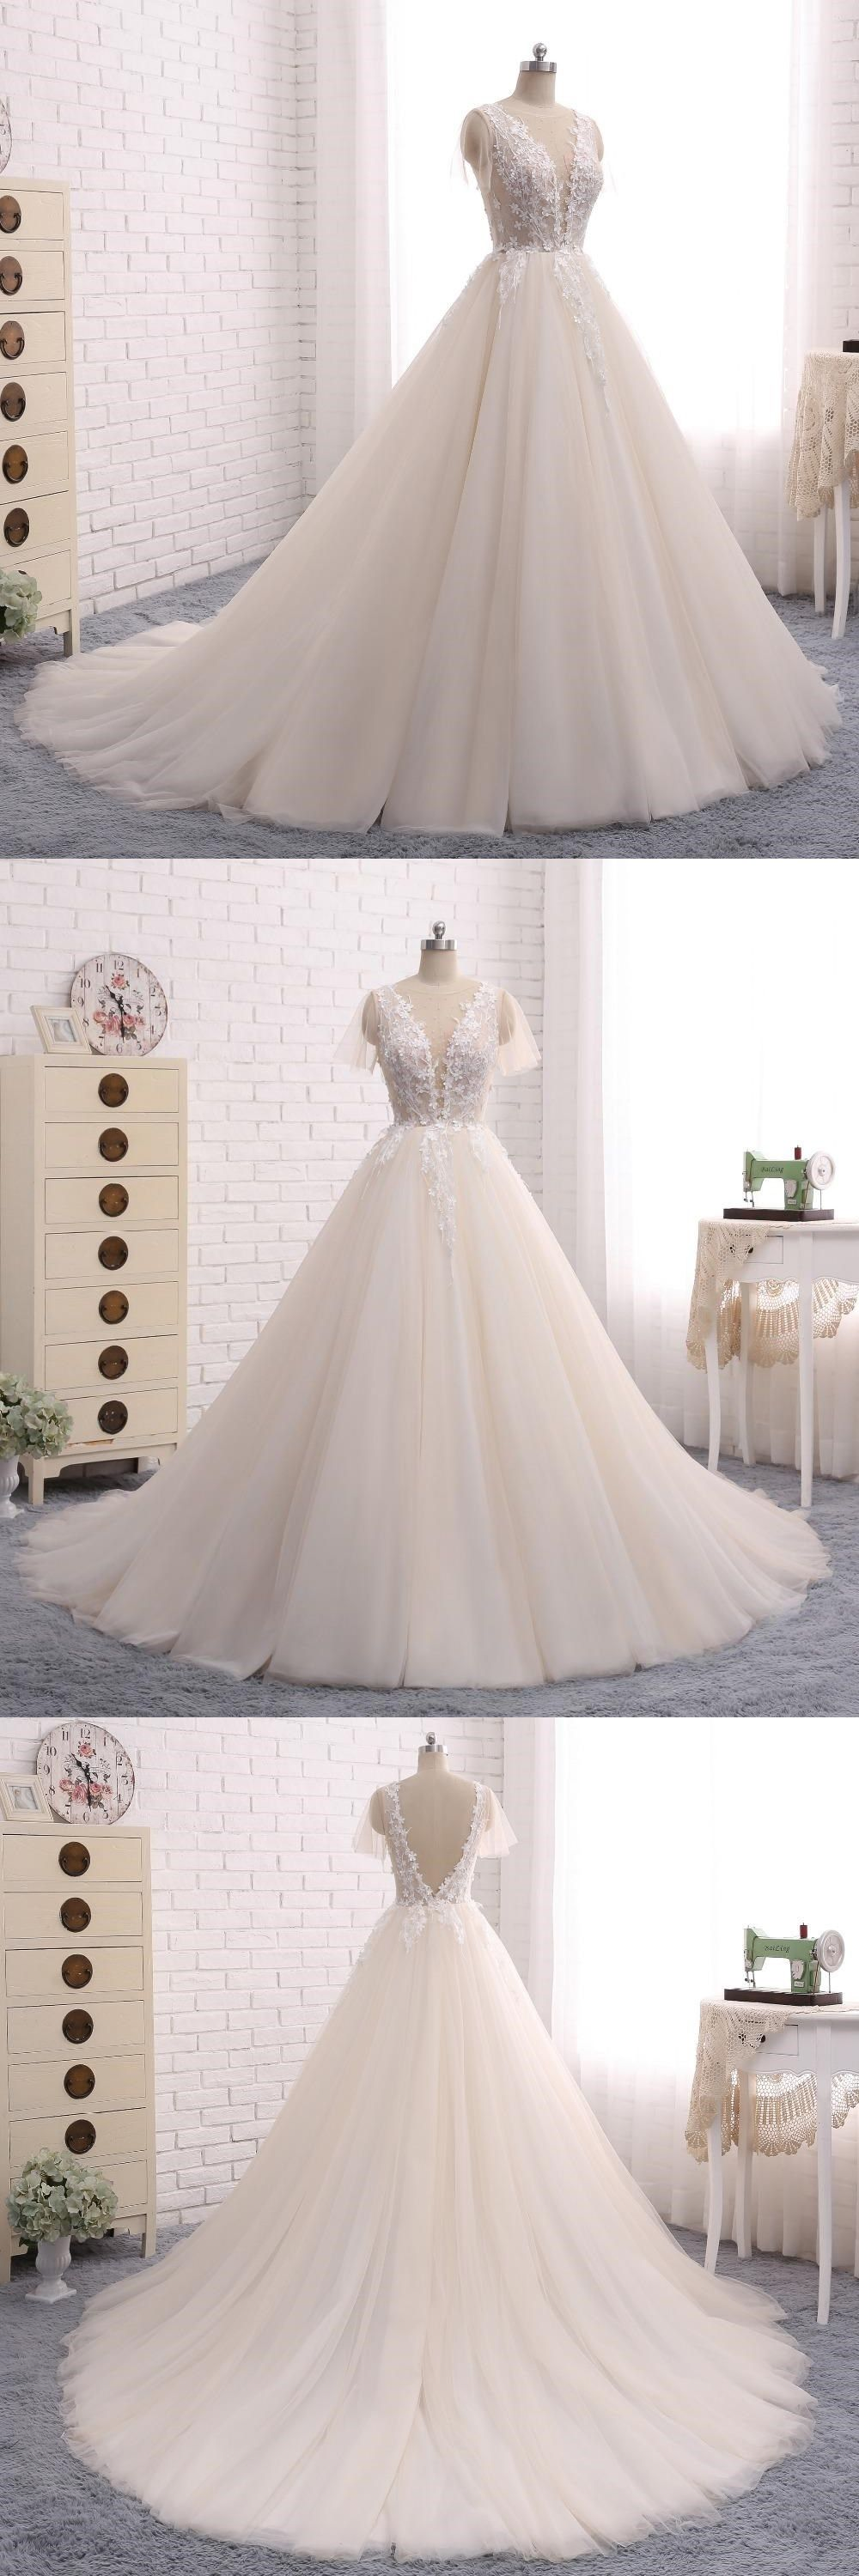 Casual wedding dress with sleeves  Ball Gown Wedding Dresses Romantic Long Train Short Sleeve Lace Big